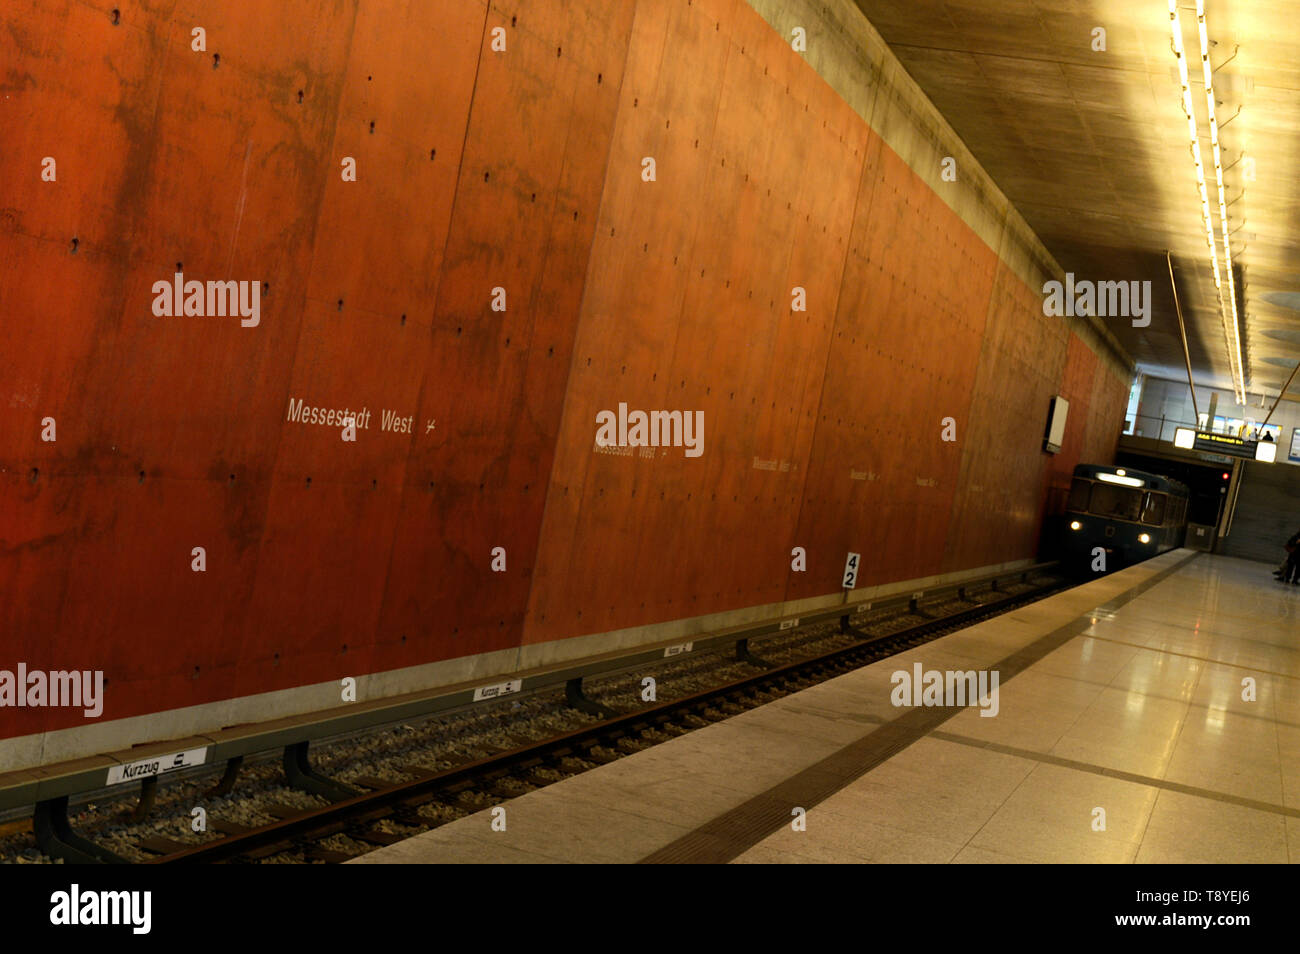 Subway arriving at subway station Messestadt West  in Munich, Germany Stock Photo